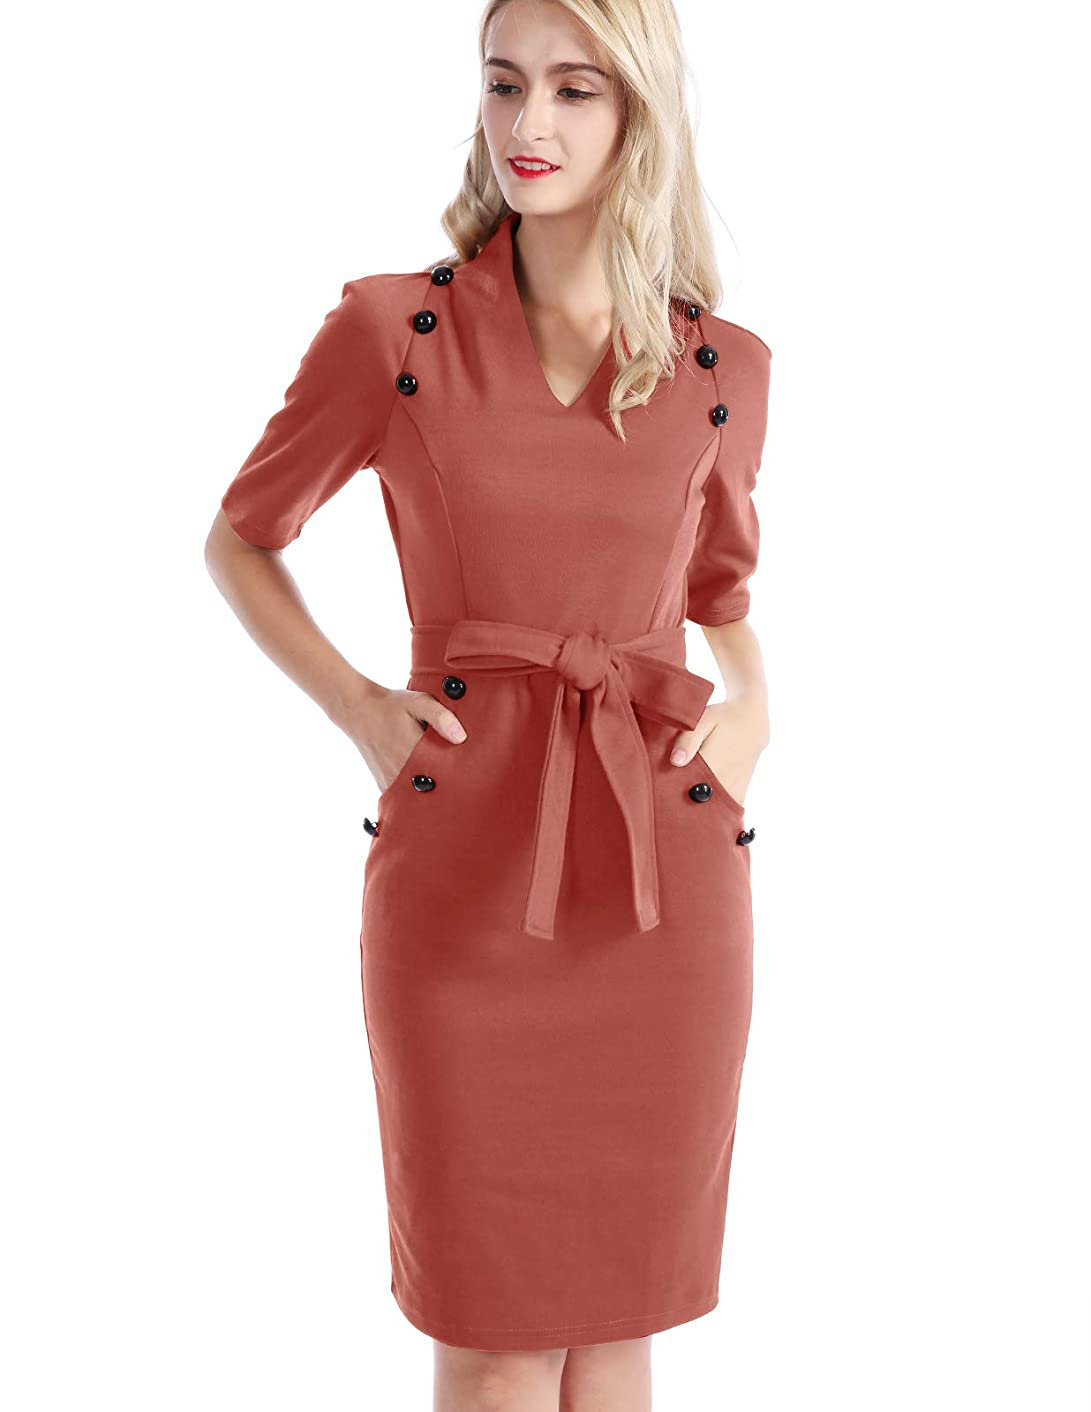 CHICIRIS Women Cozy Business Suit Short Sleeve Belted Bodycon Pencil Dress